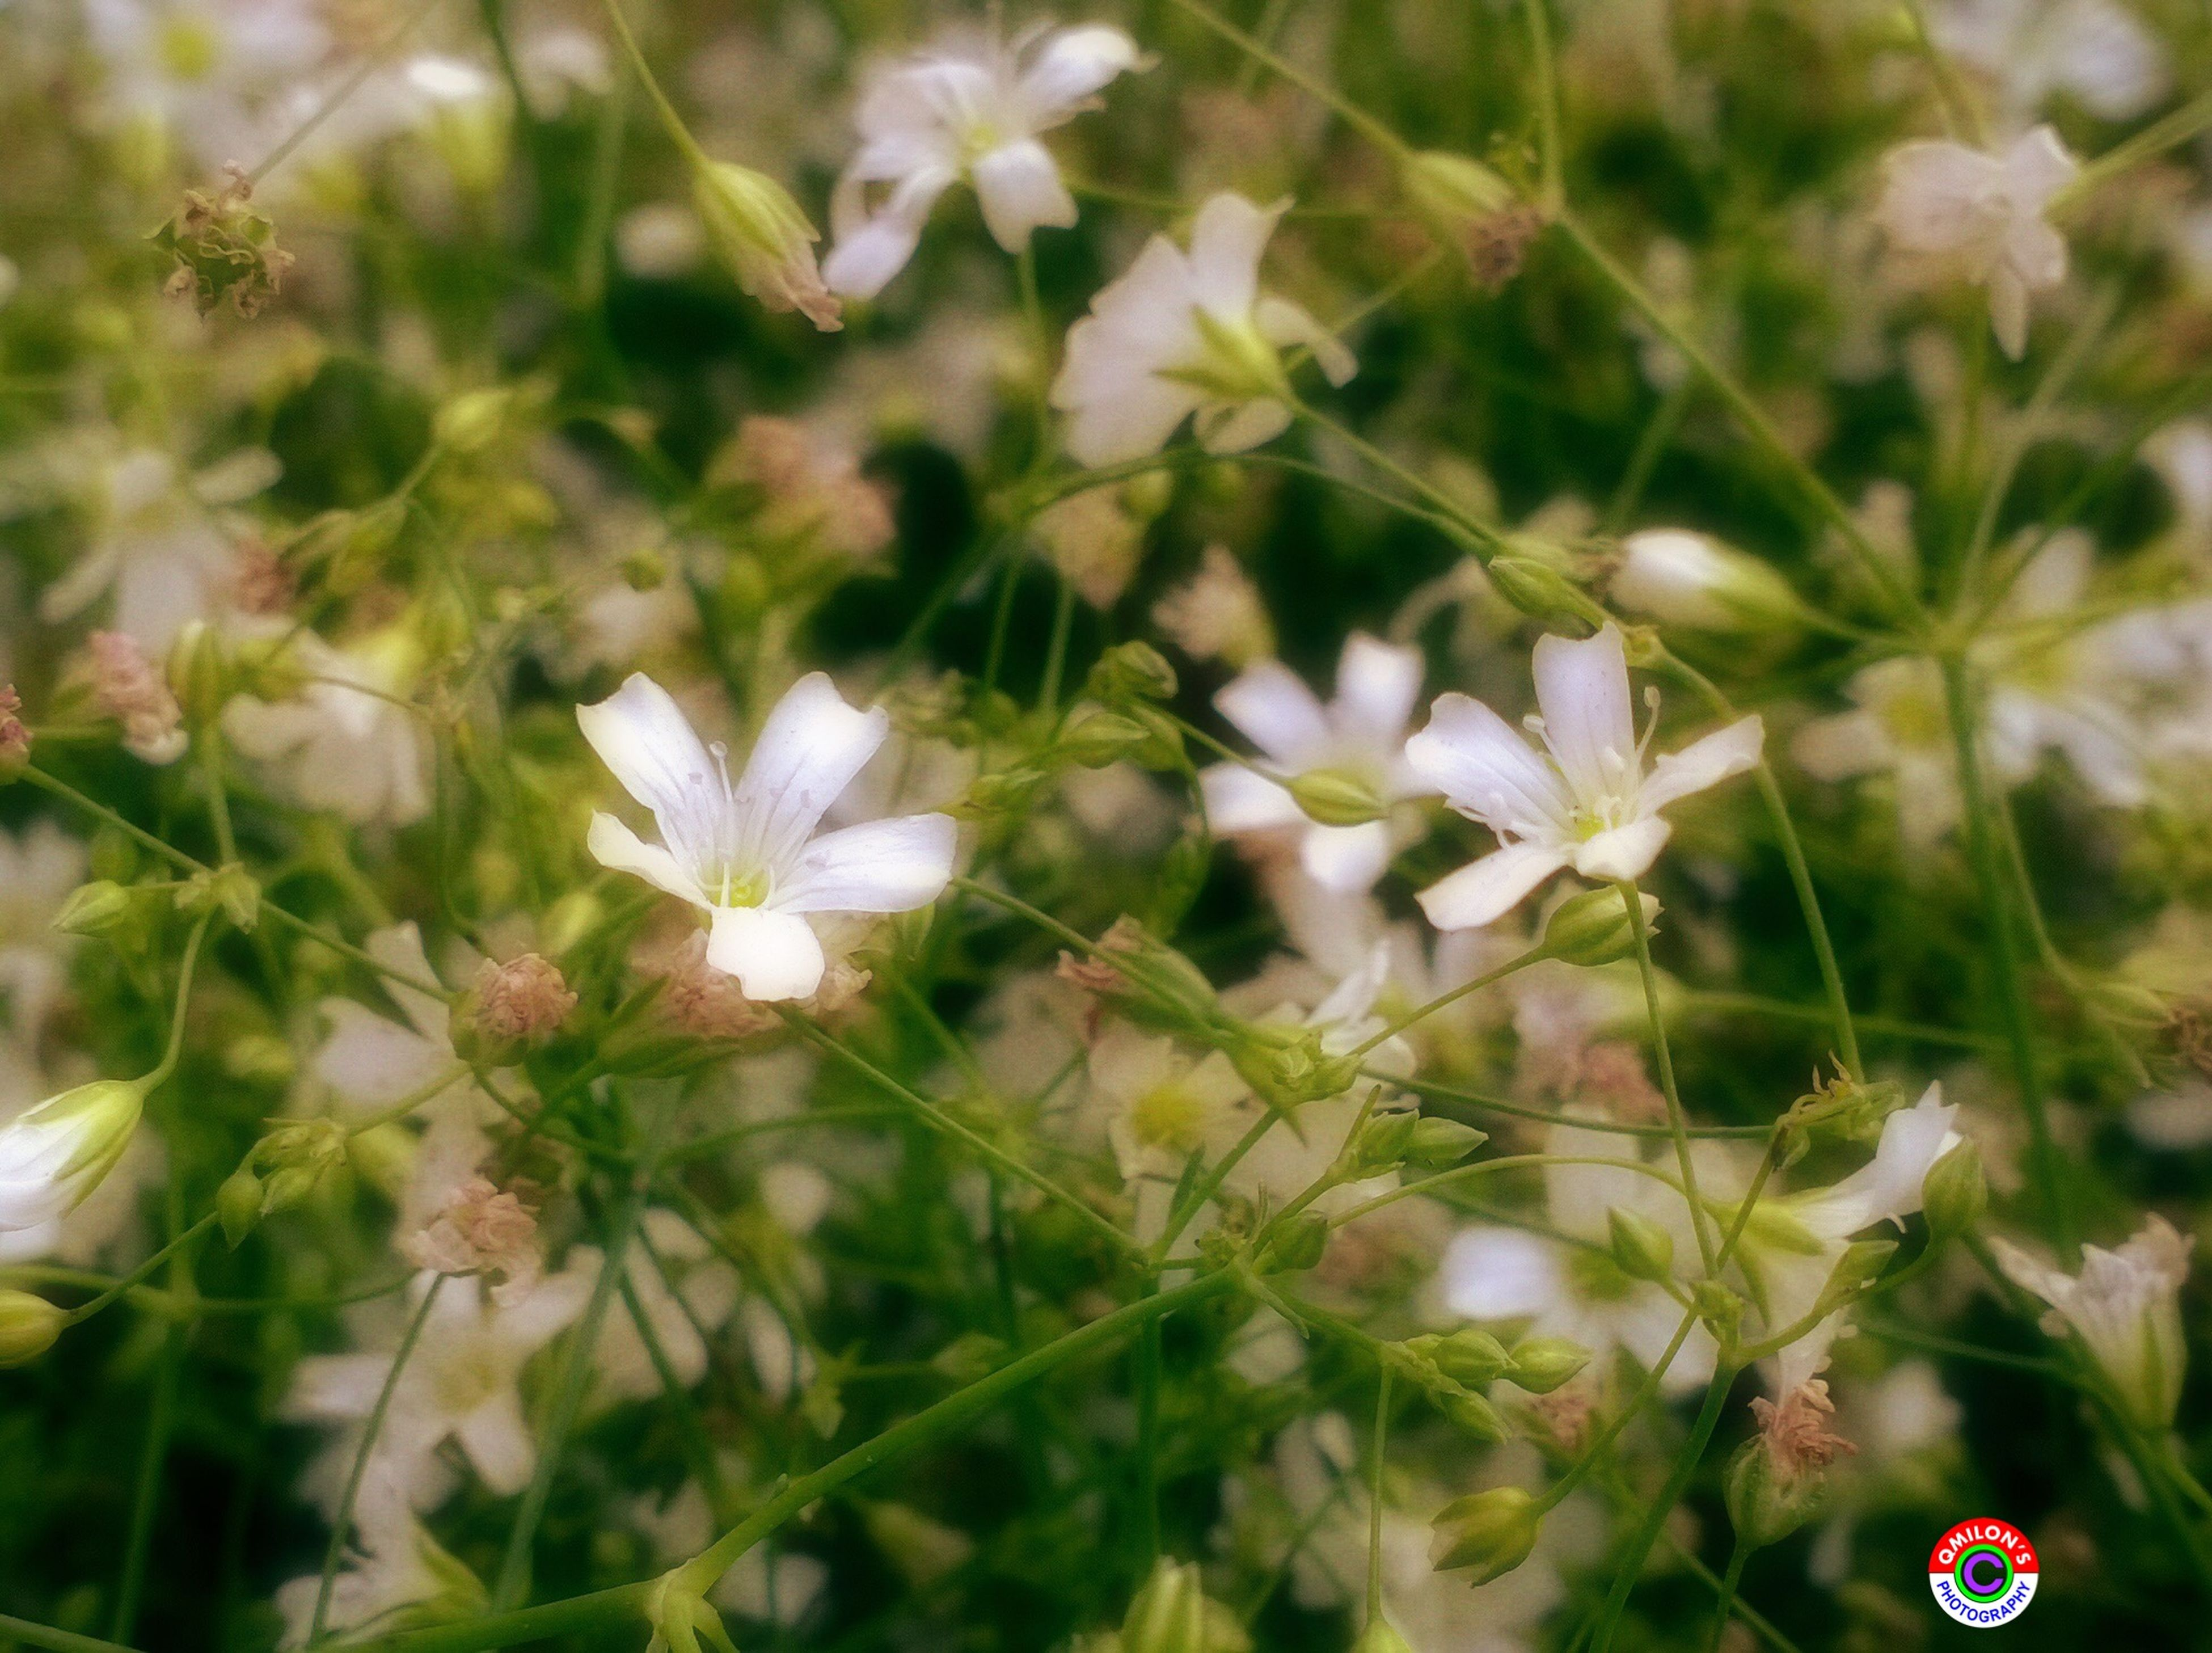 flower, freshness, growth, fragility, petal, beauty in nature, flower head, plant, blooming, nature, close-up, focus on foreground, in bloom, white color, selective focus, blossom, outdoors, stem, botany, springtime